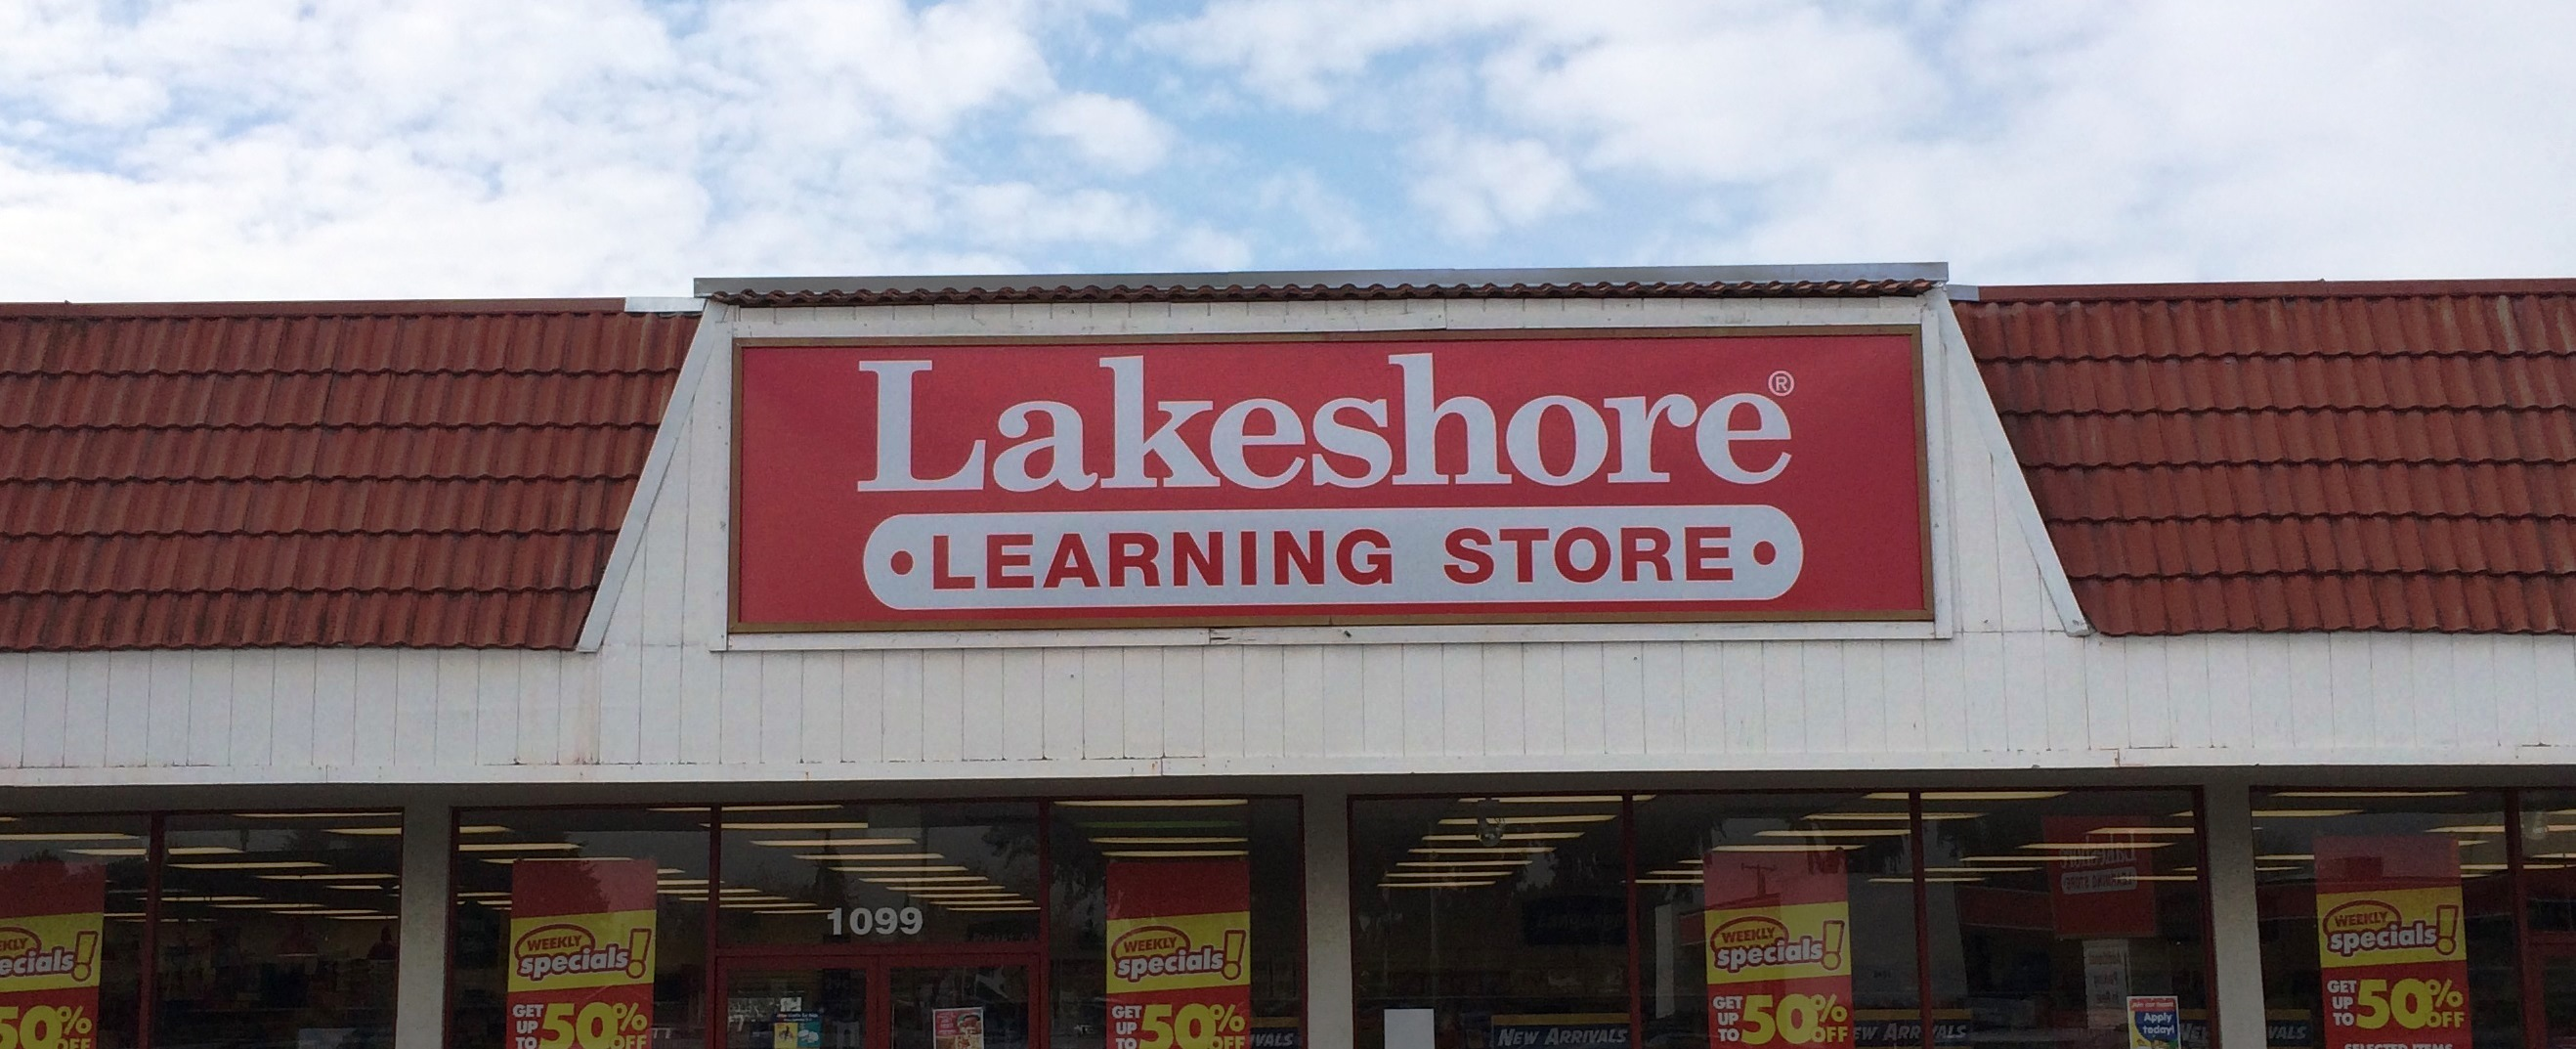 Lakeshore learning store gets new sign faces signs for Lakeshore design builders